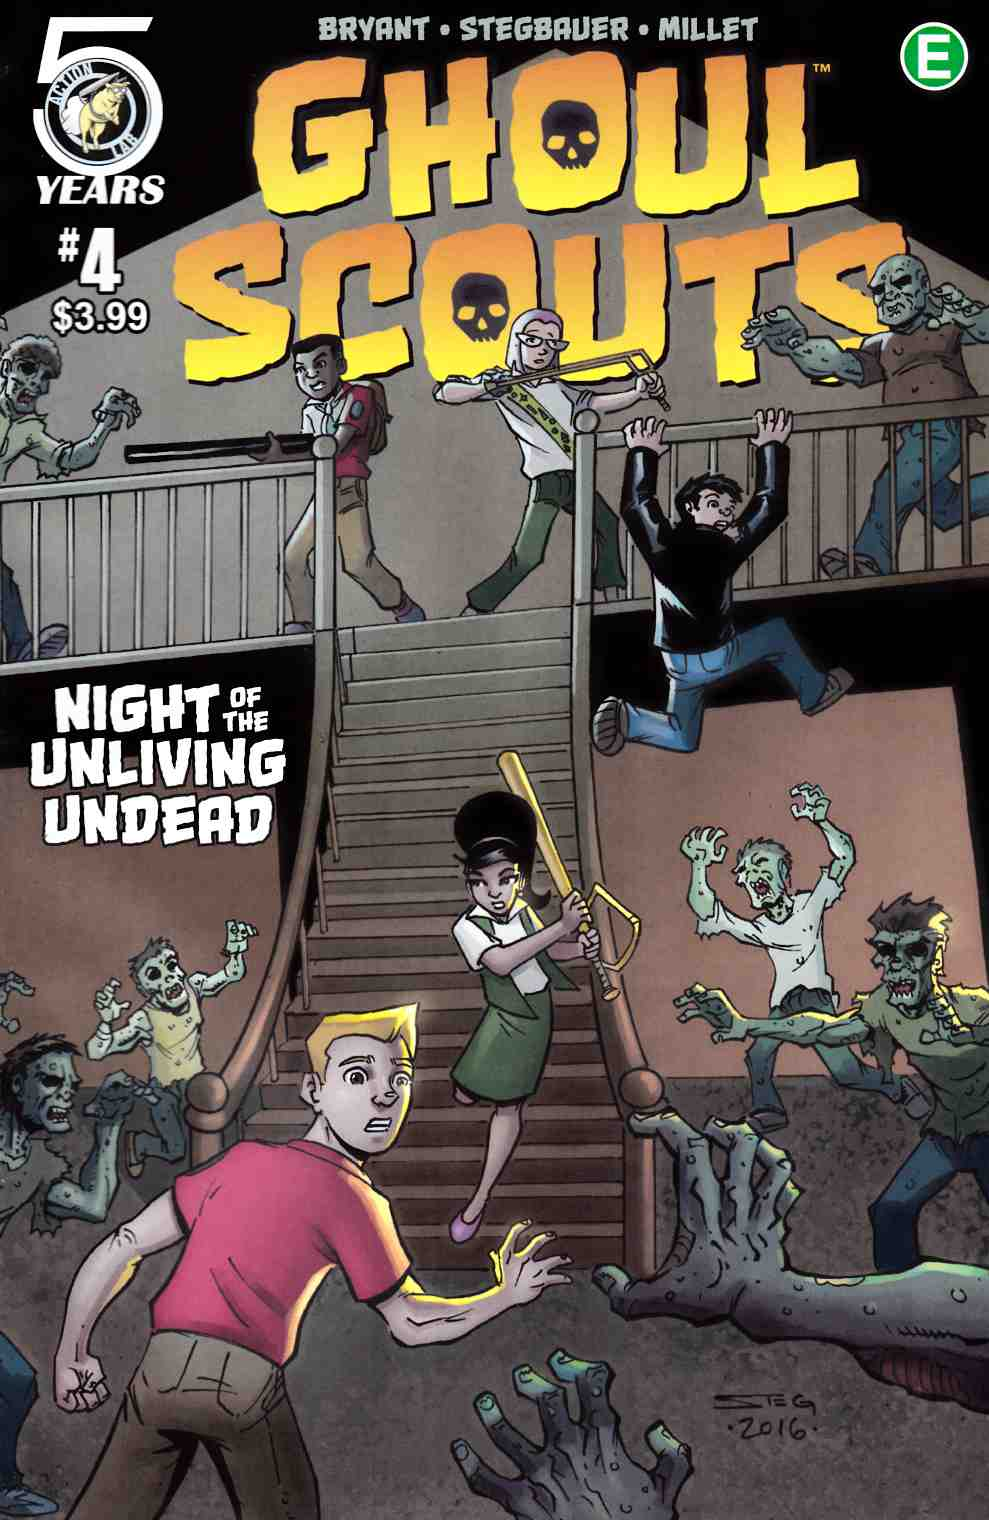 Ghoul Scouts Night of the Unliving Undead #4 Cover A [Action Lab Comic] THUMBNAIL